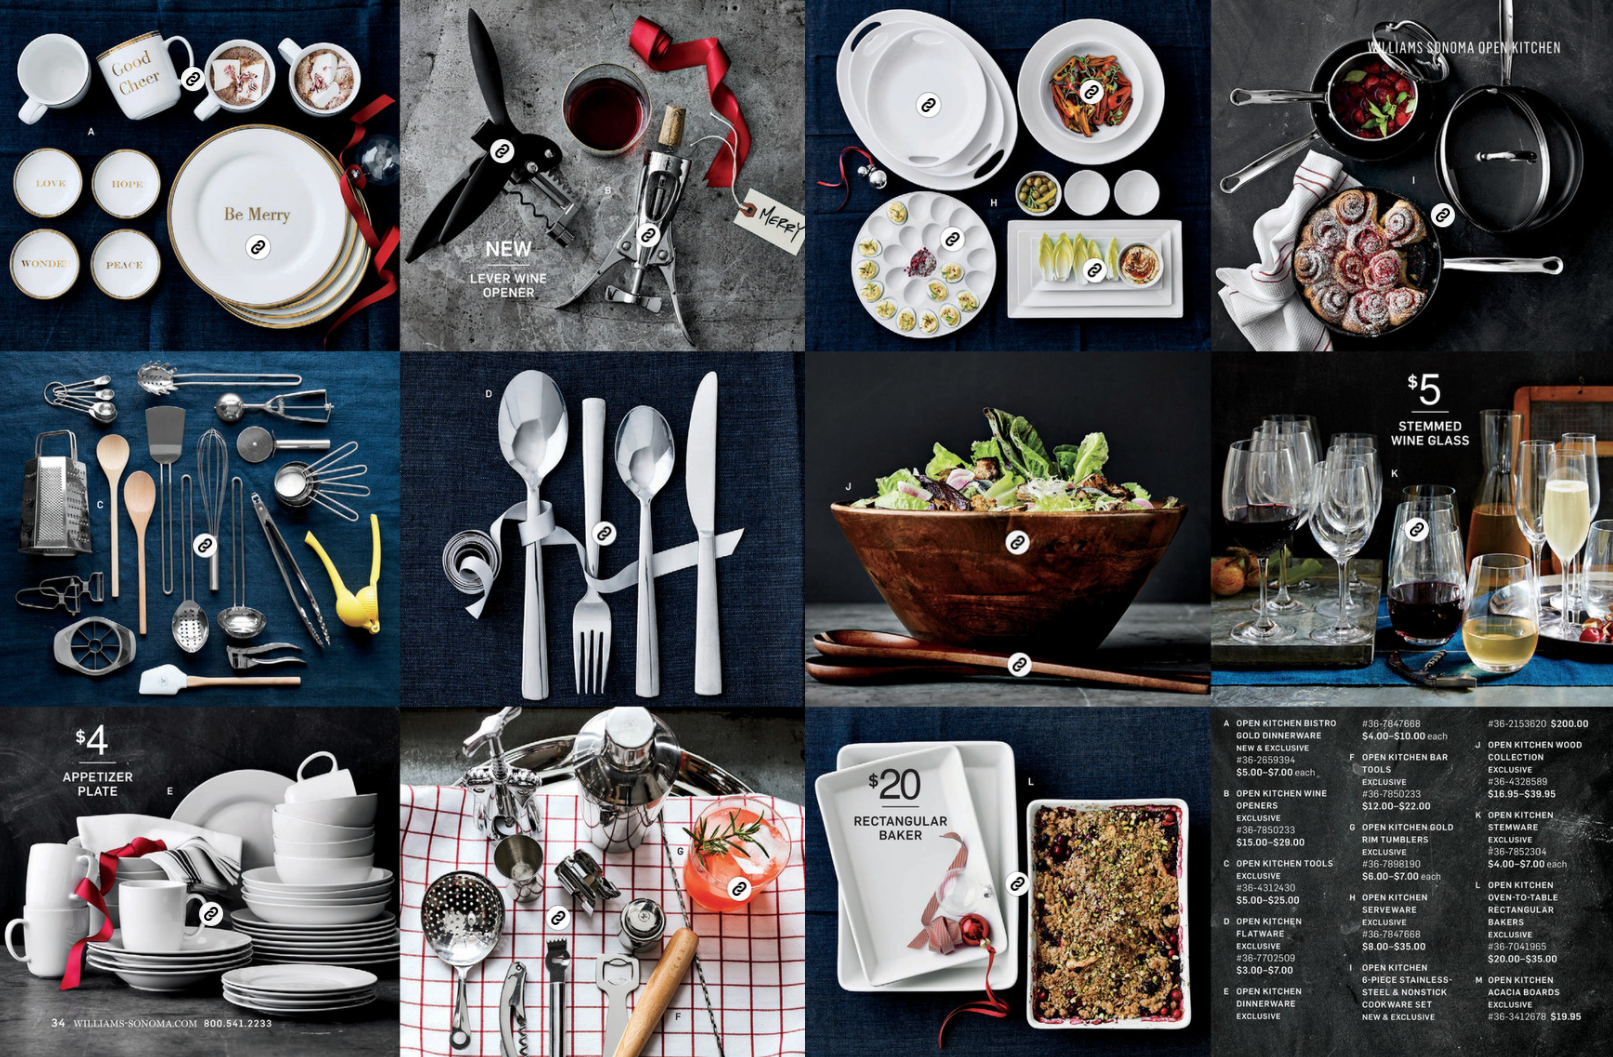 Photography: Anders Schonnemann, Prop Styling: Amy Wilson, Food Styling: Alison Attenborough, Art Direction: Marcus Hay for SMH, inc